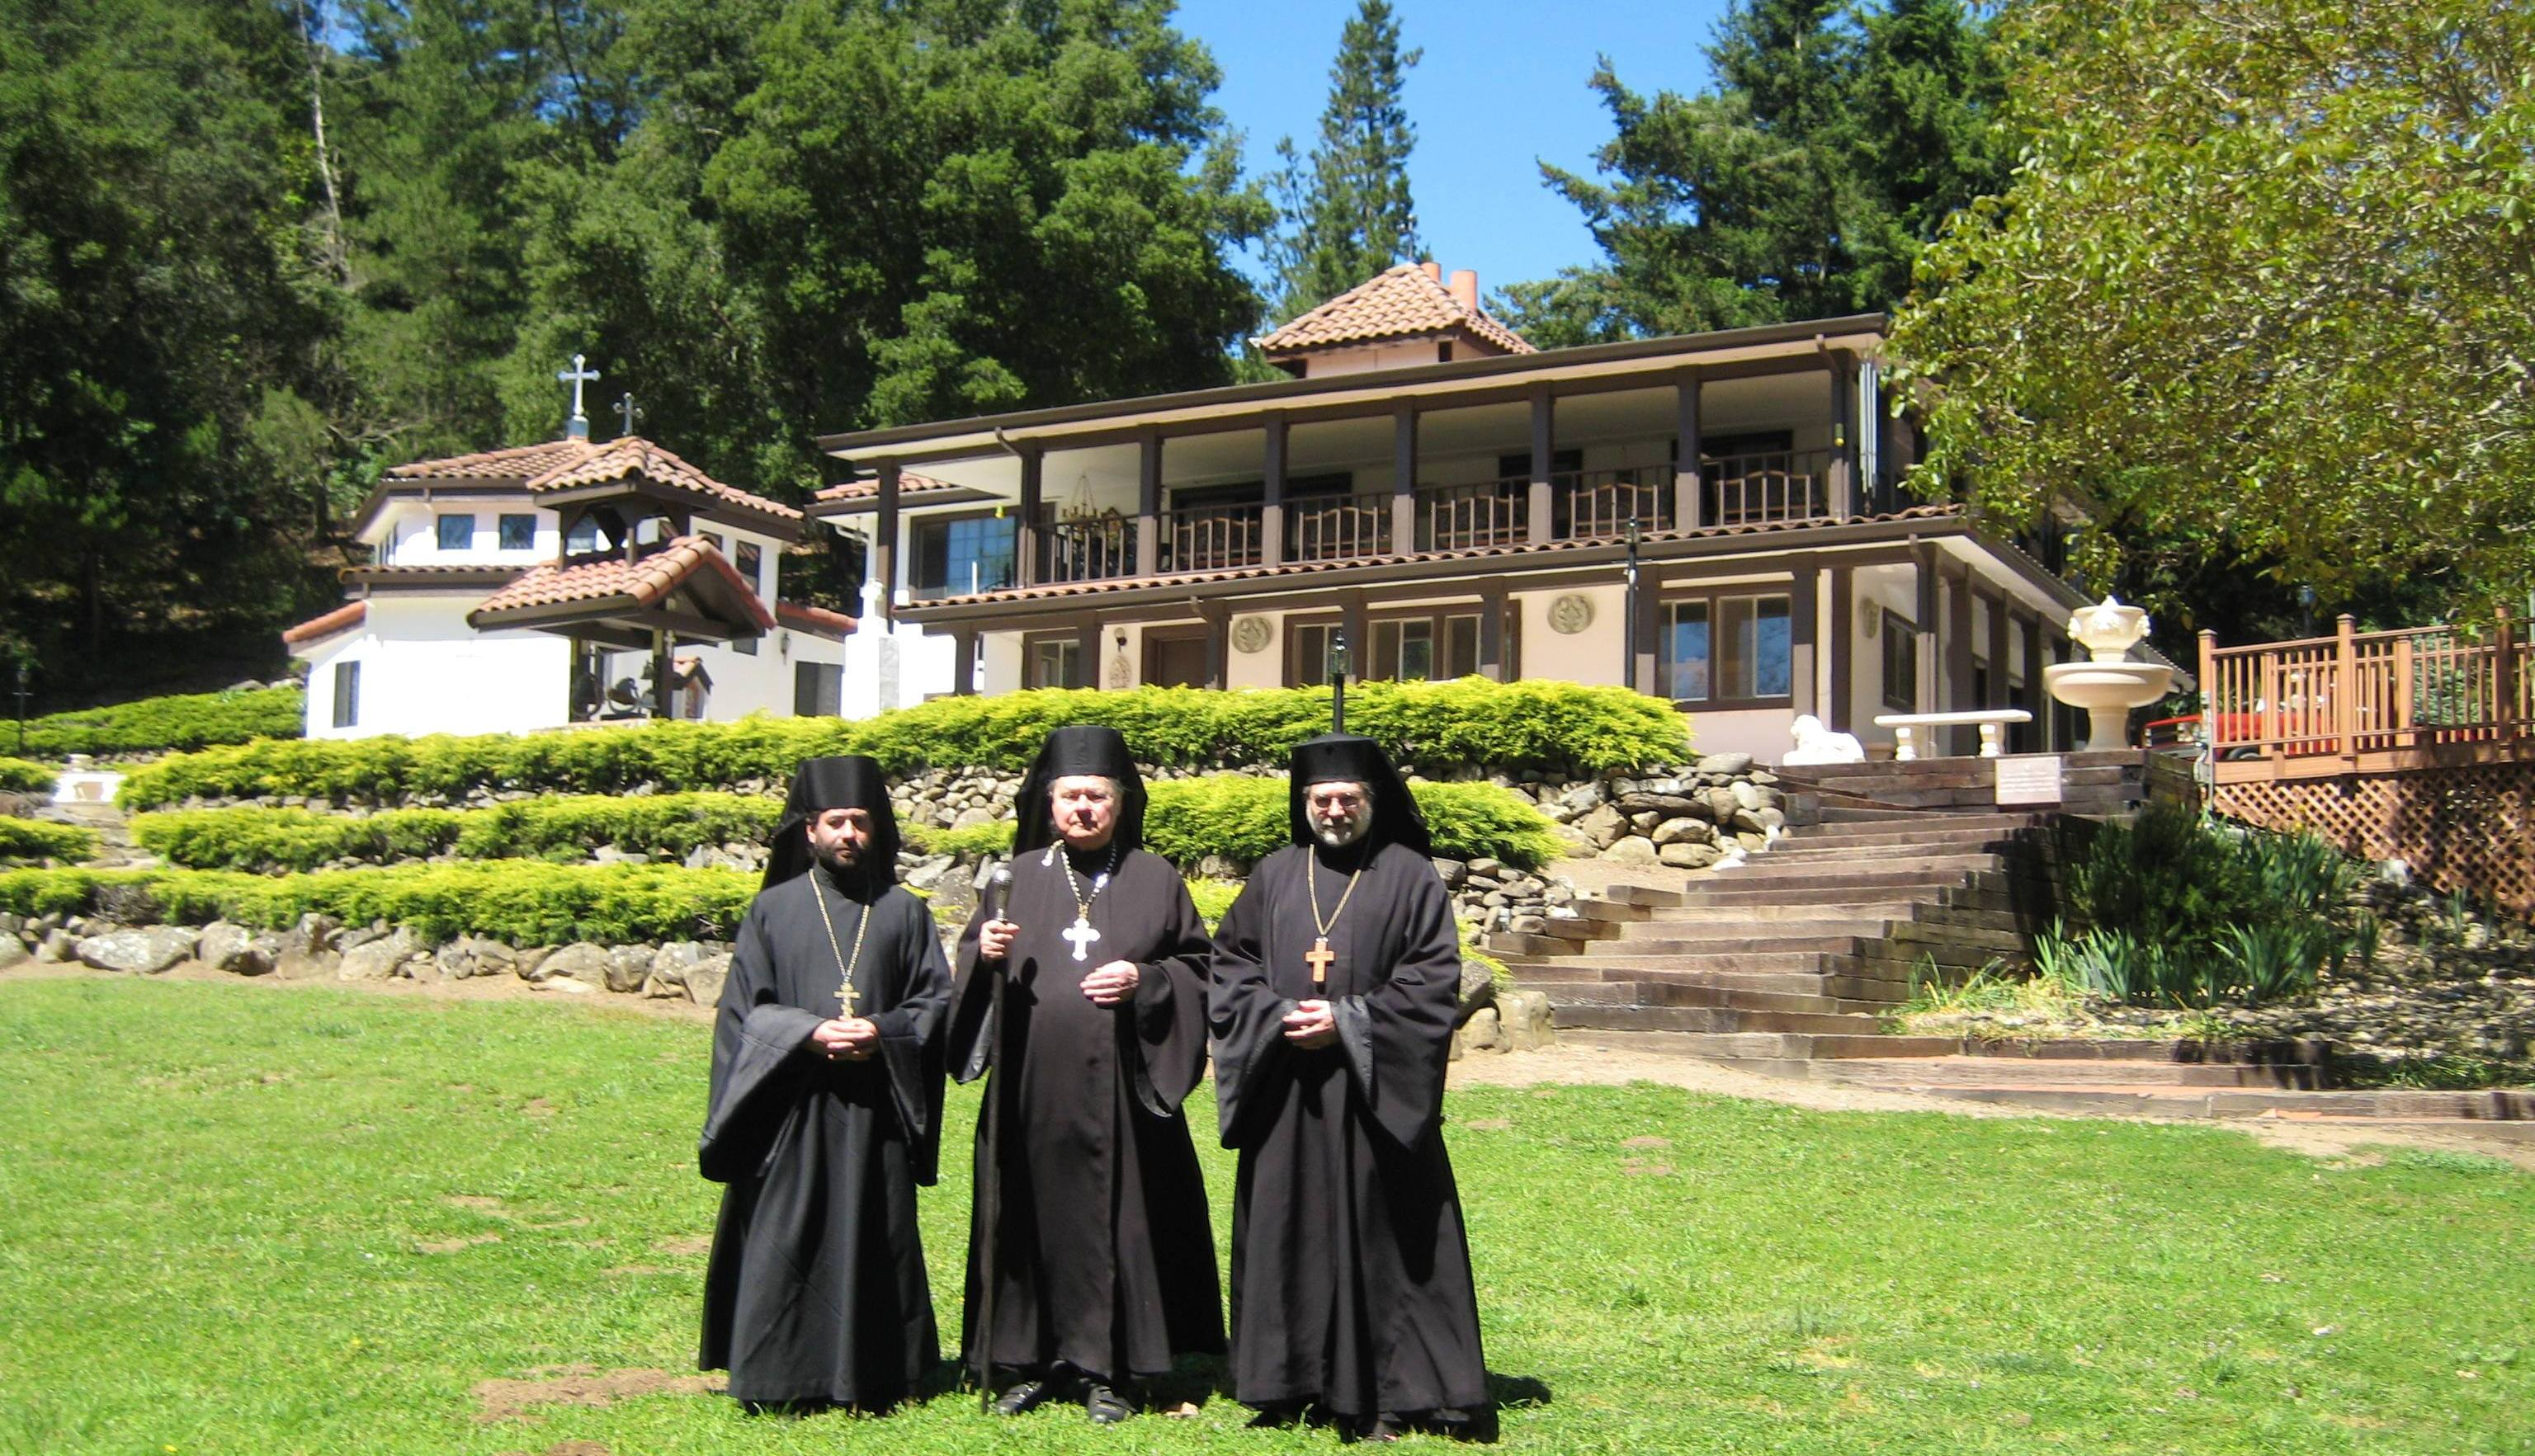 (left) Father Peter Didun, (center) Father Theodor Micka and Father Stephen Scott (right) at Holy Cross Monastery in Castro Valley.